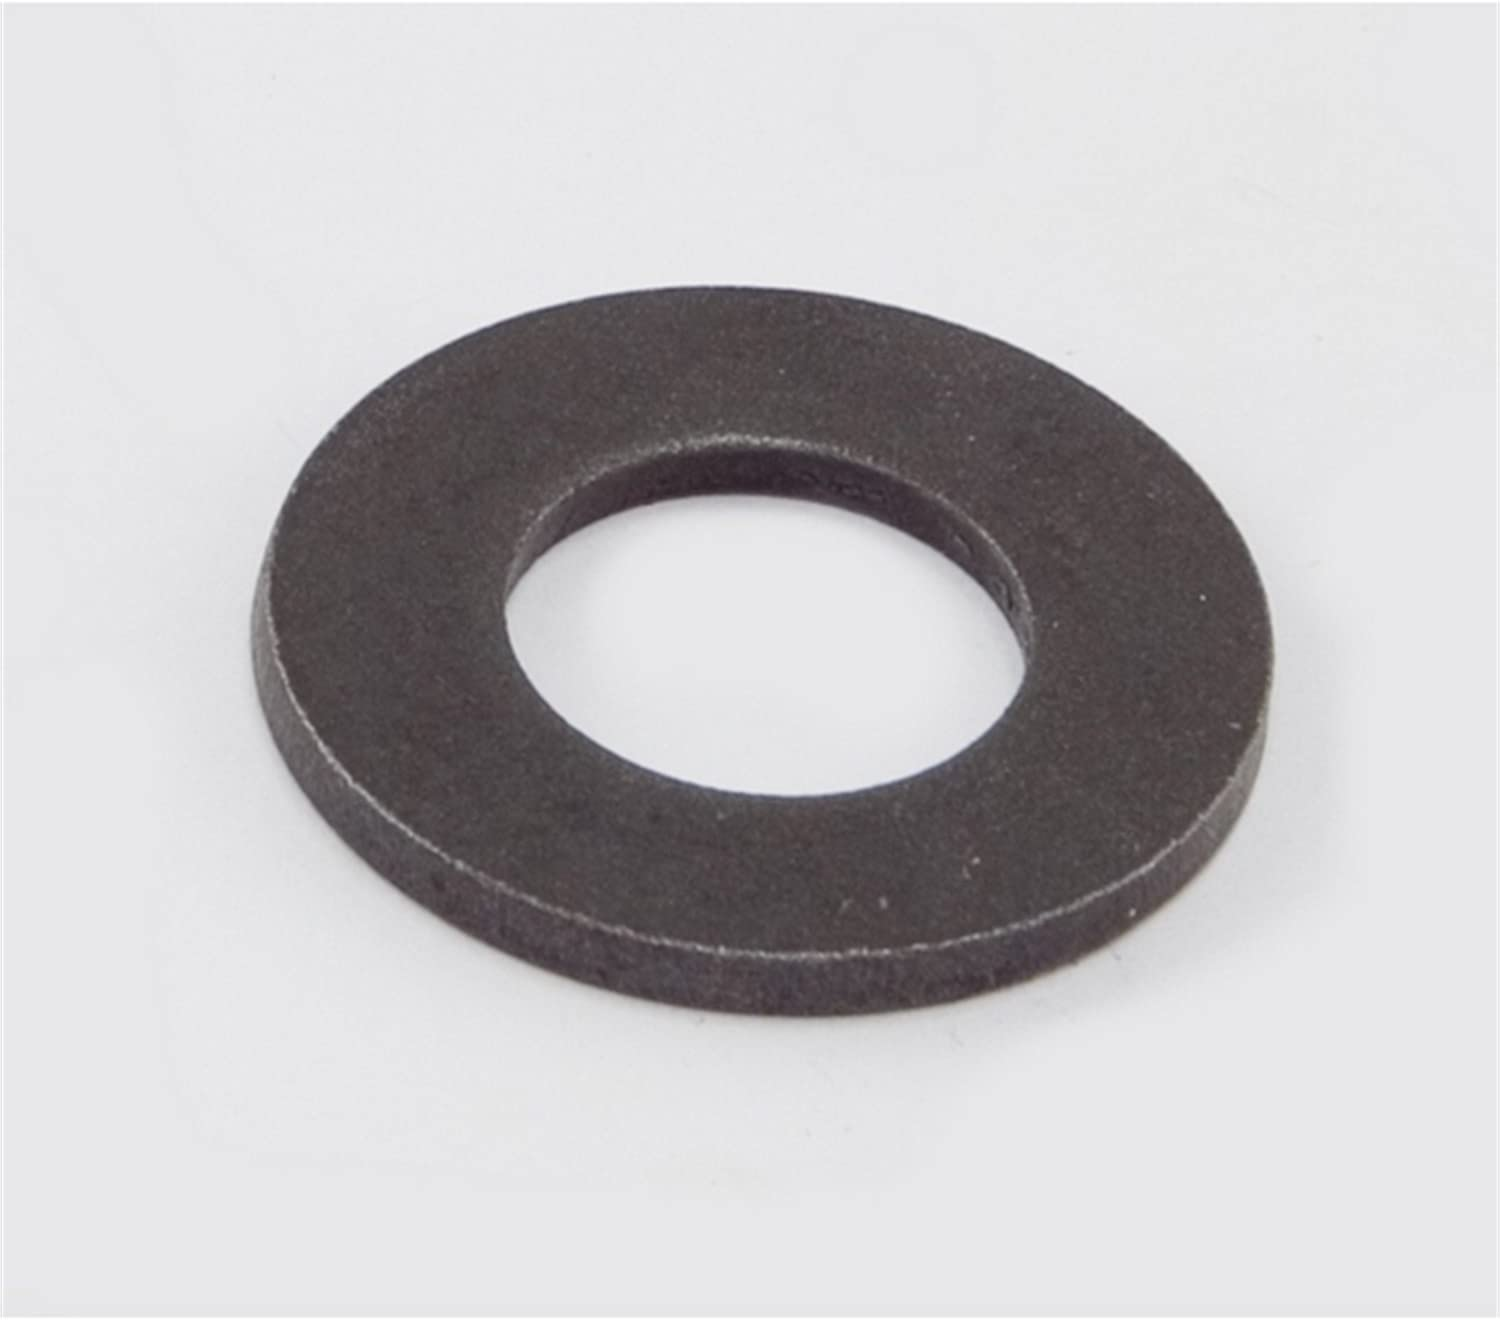 Omix-Ada Award All stores are sold 16584.02 Pinion Washer